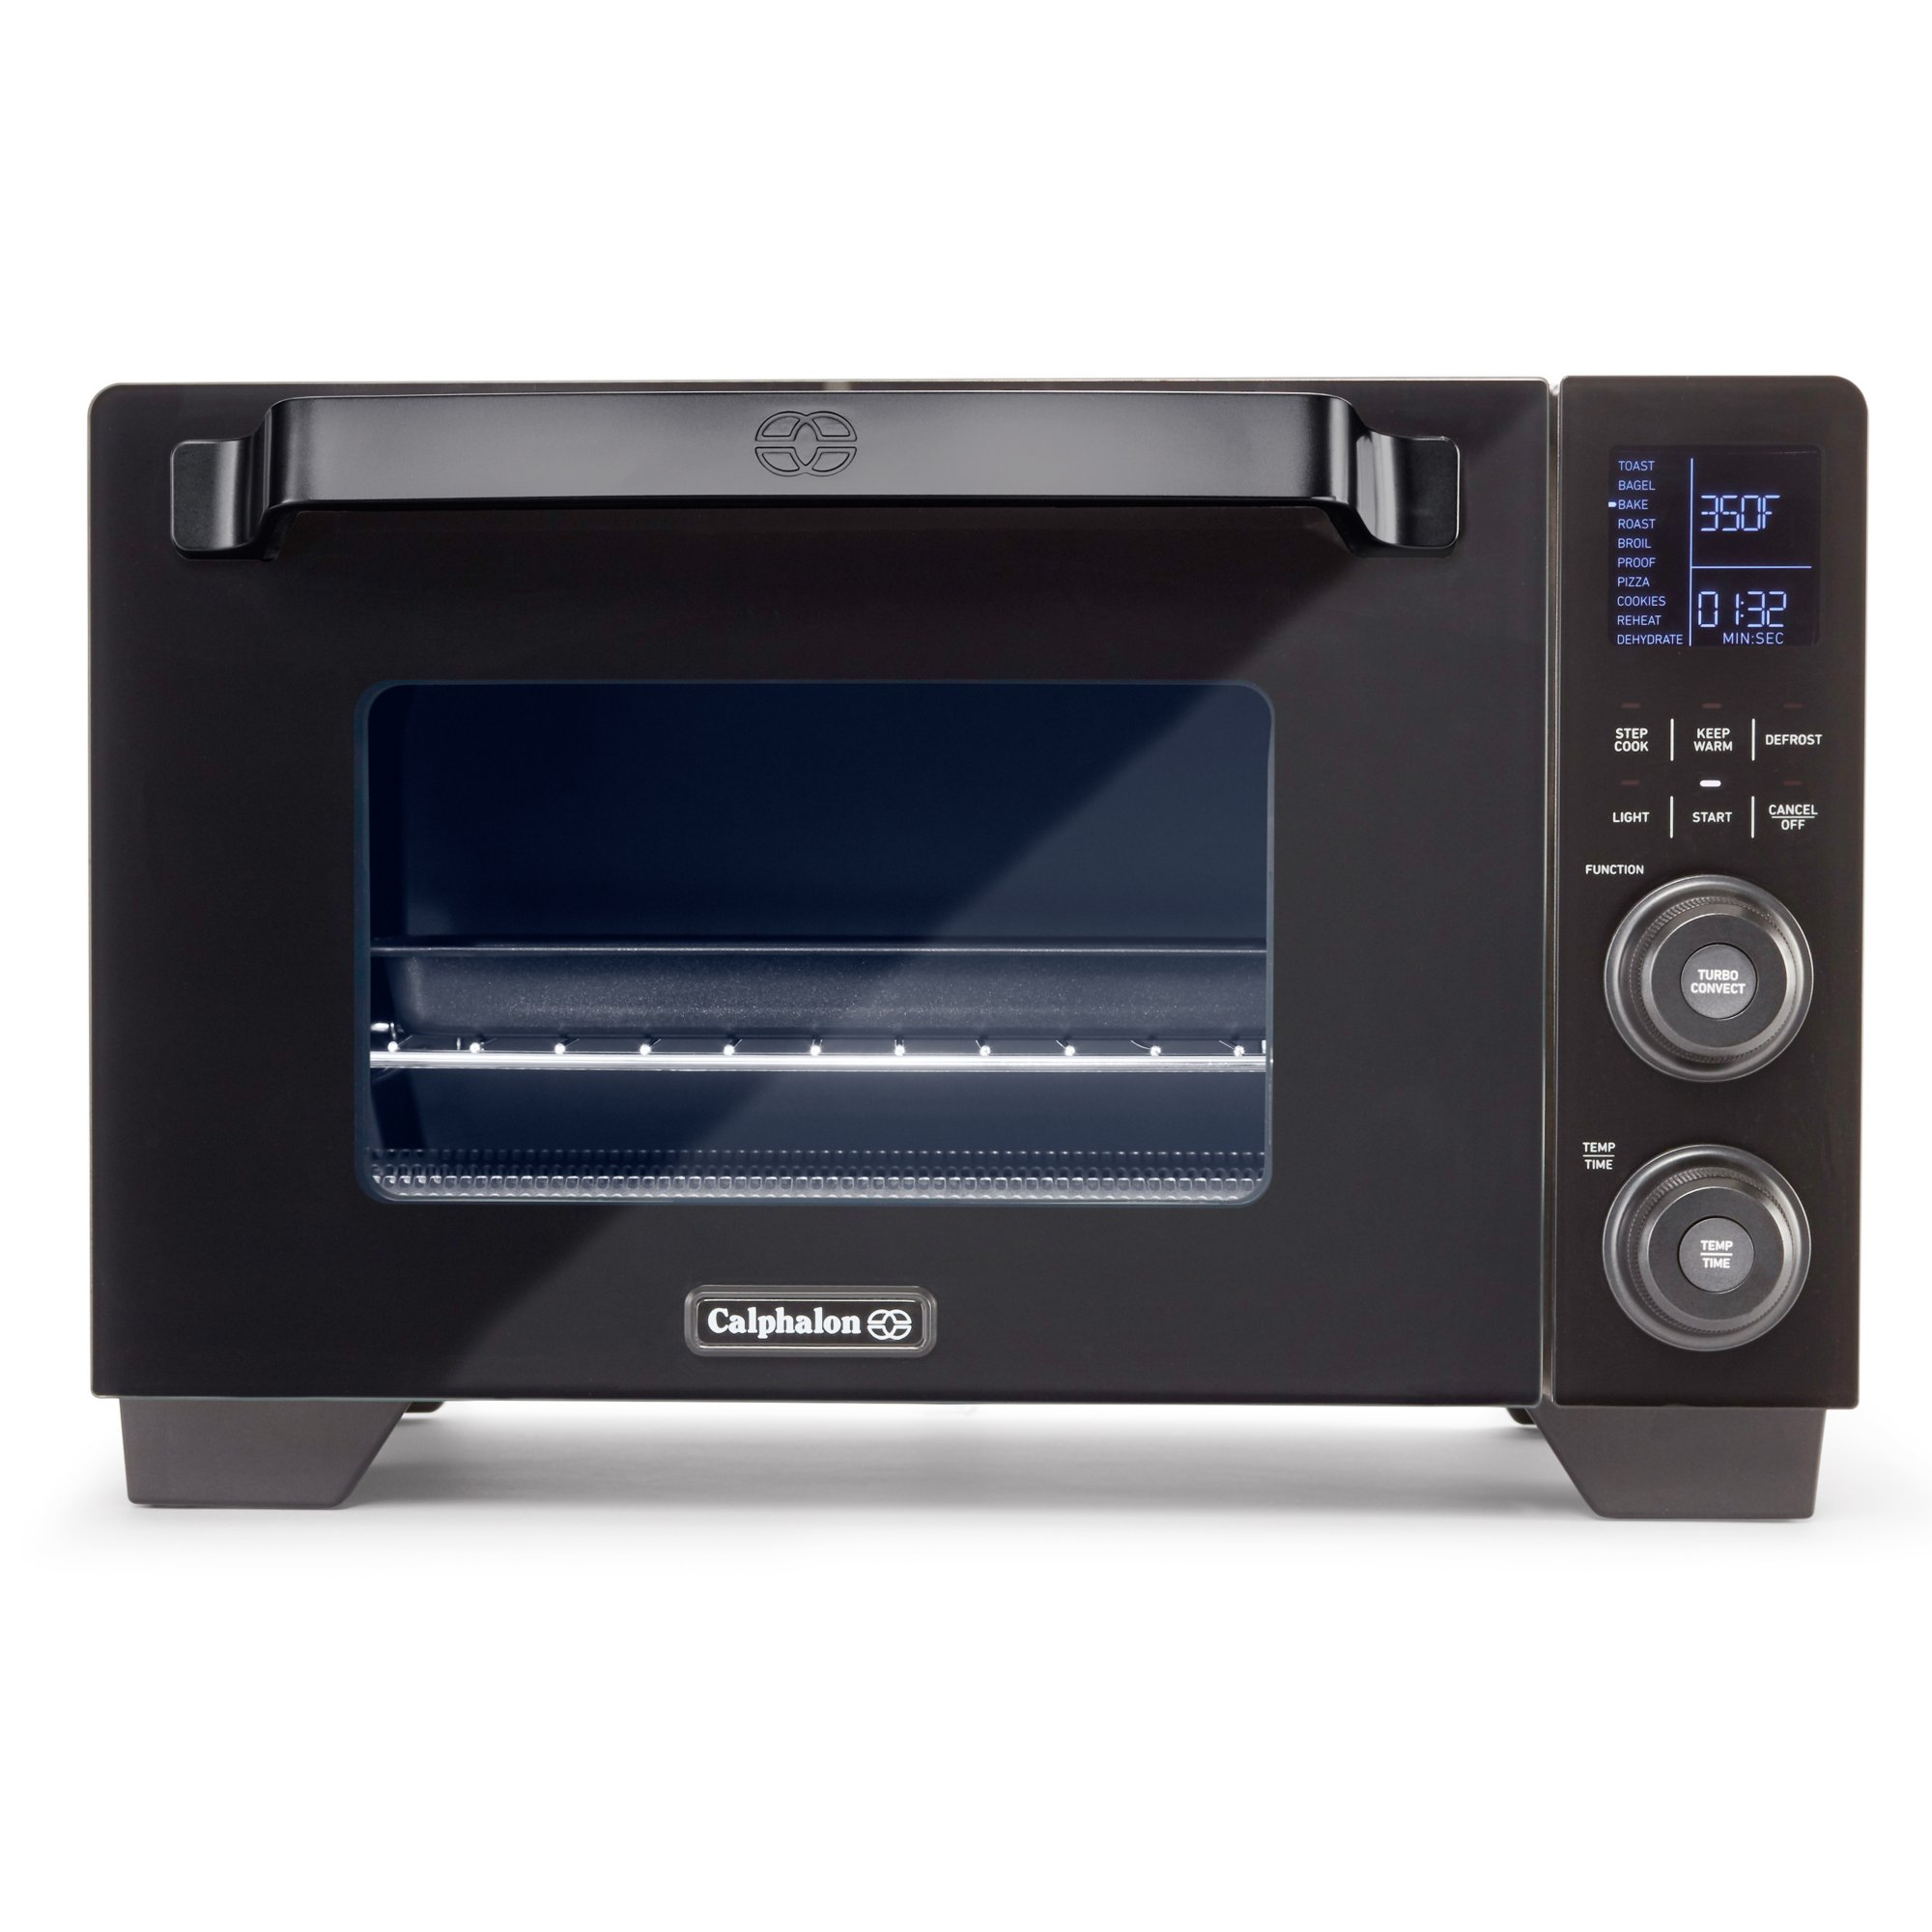 Calphalon Performance Cool Touch Countertop Toaster Oven, Convection Toaster Oven, Large Toaster Oven